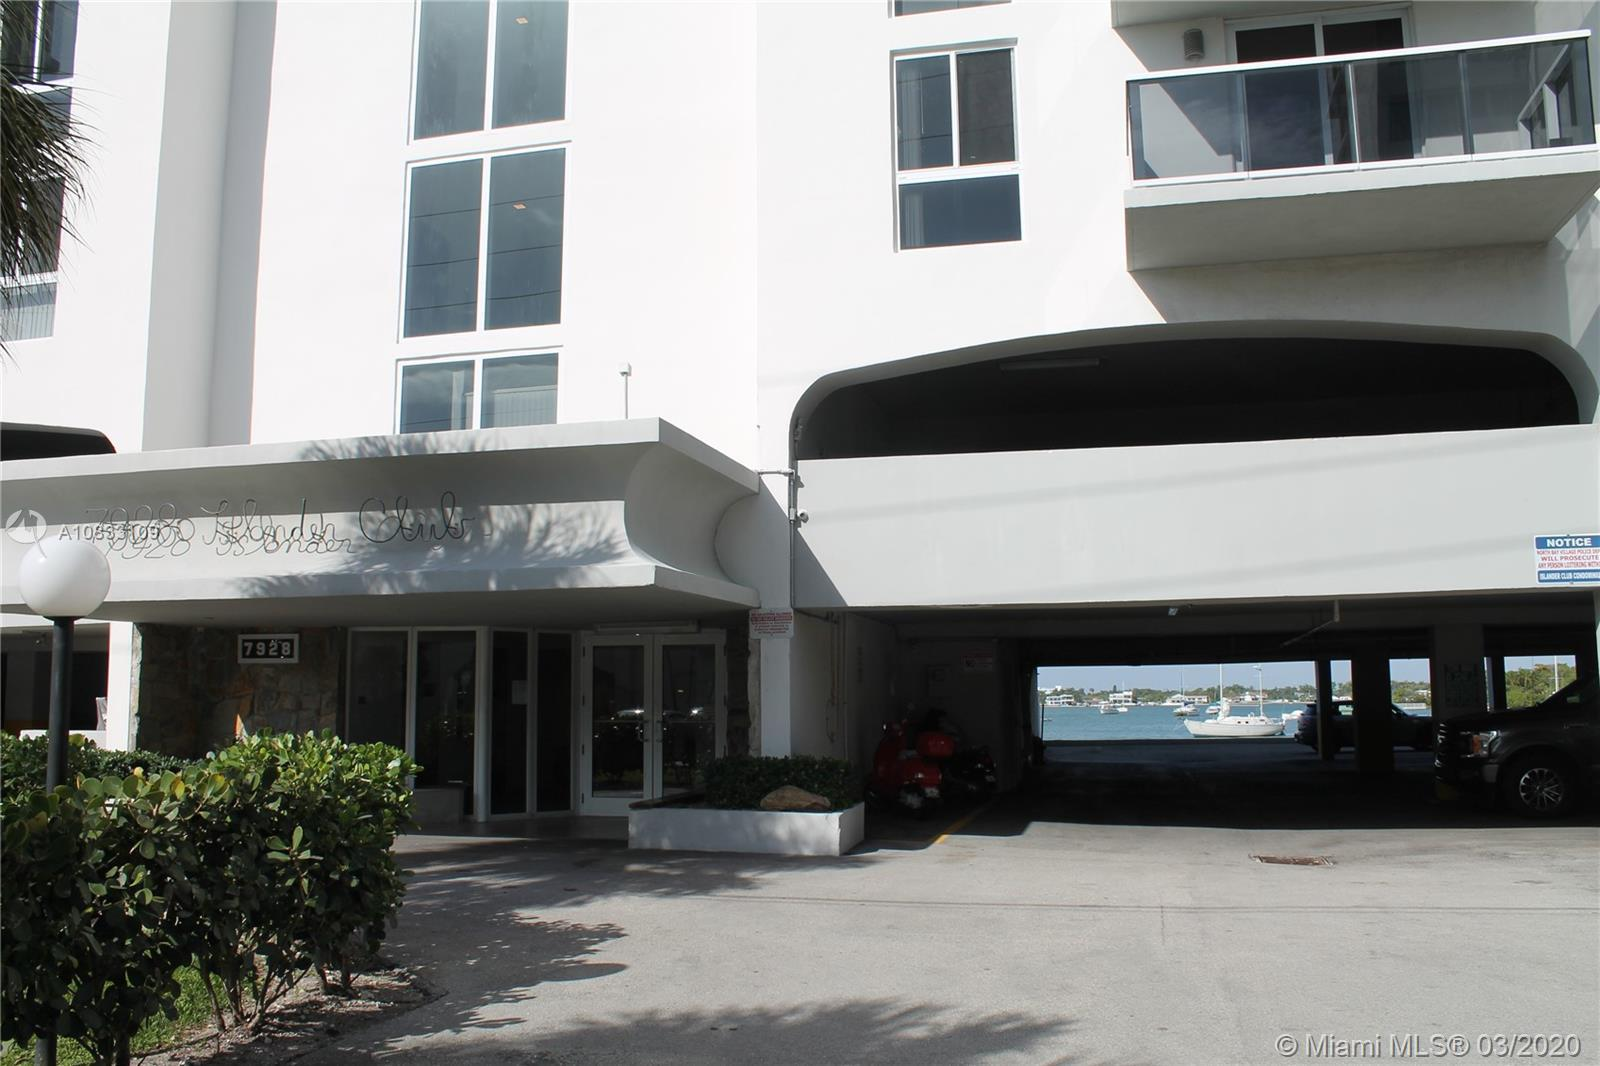 Perfectly located chic condo exuding Miami distinctive style in bay from the building. Clean, modern